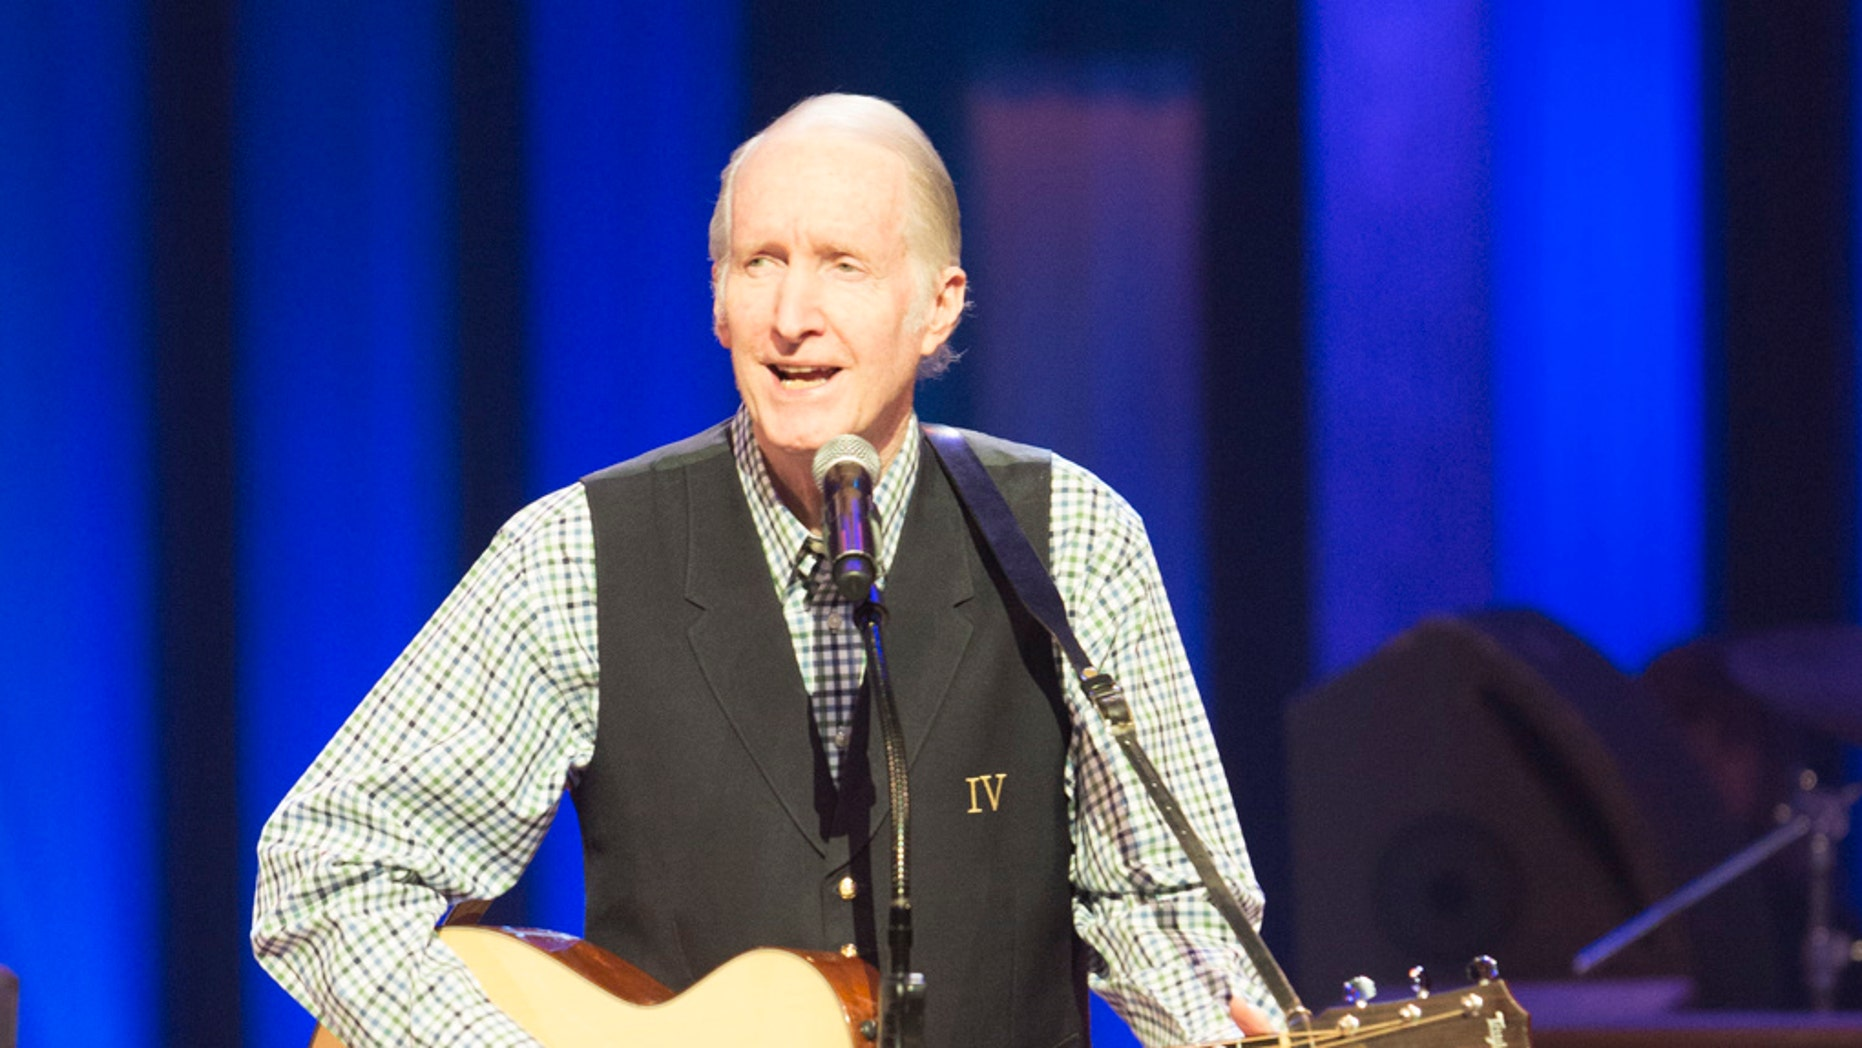 George Hamilton IV performing at the Grand Ole Opry.